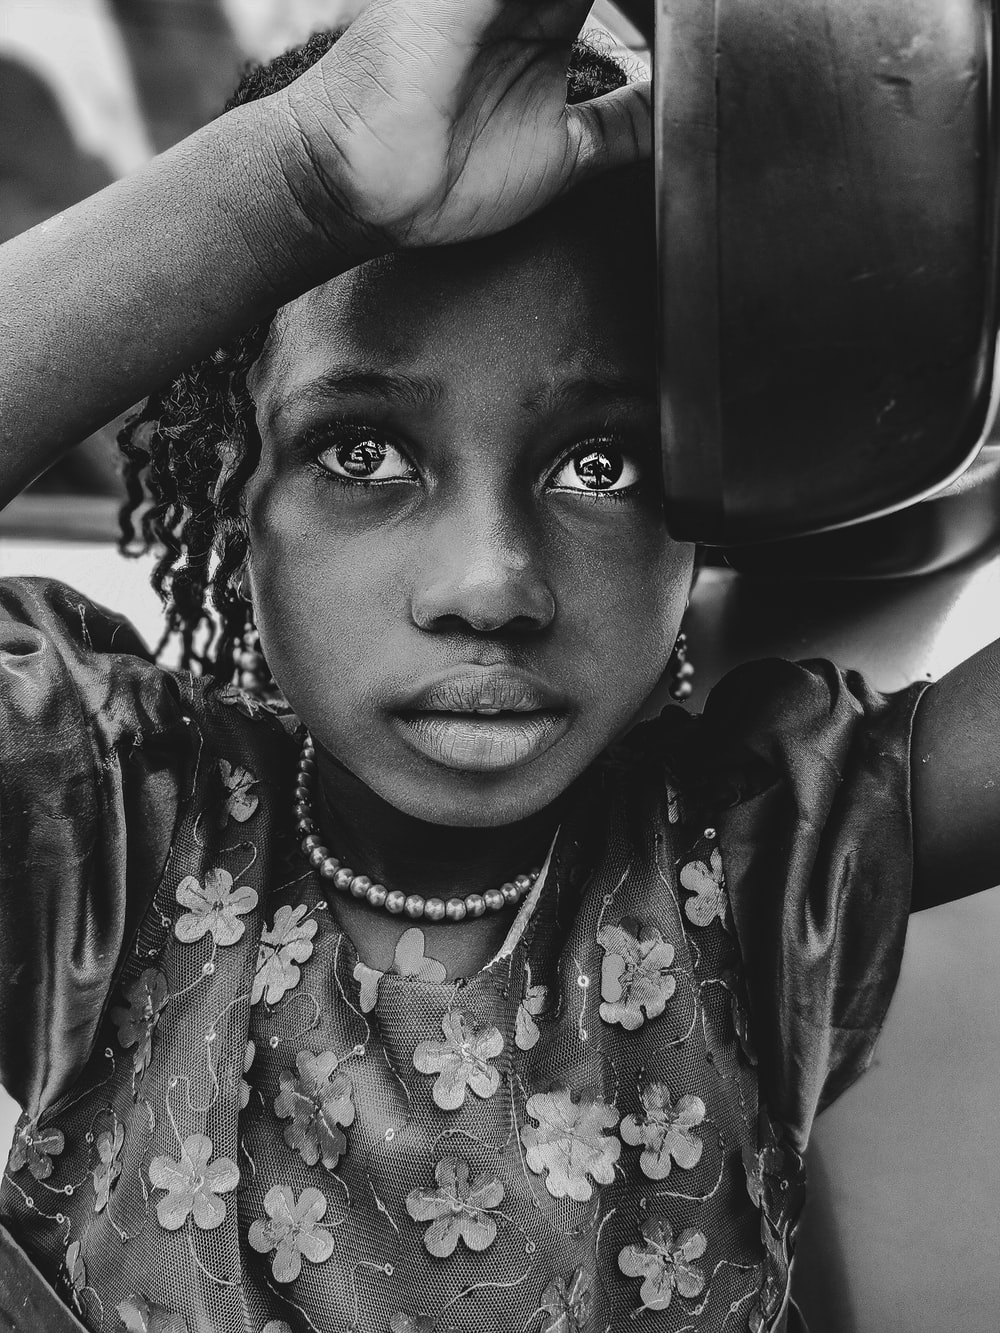 girl holding bowl on grayscale photography